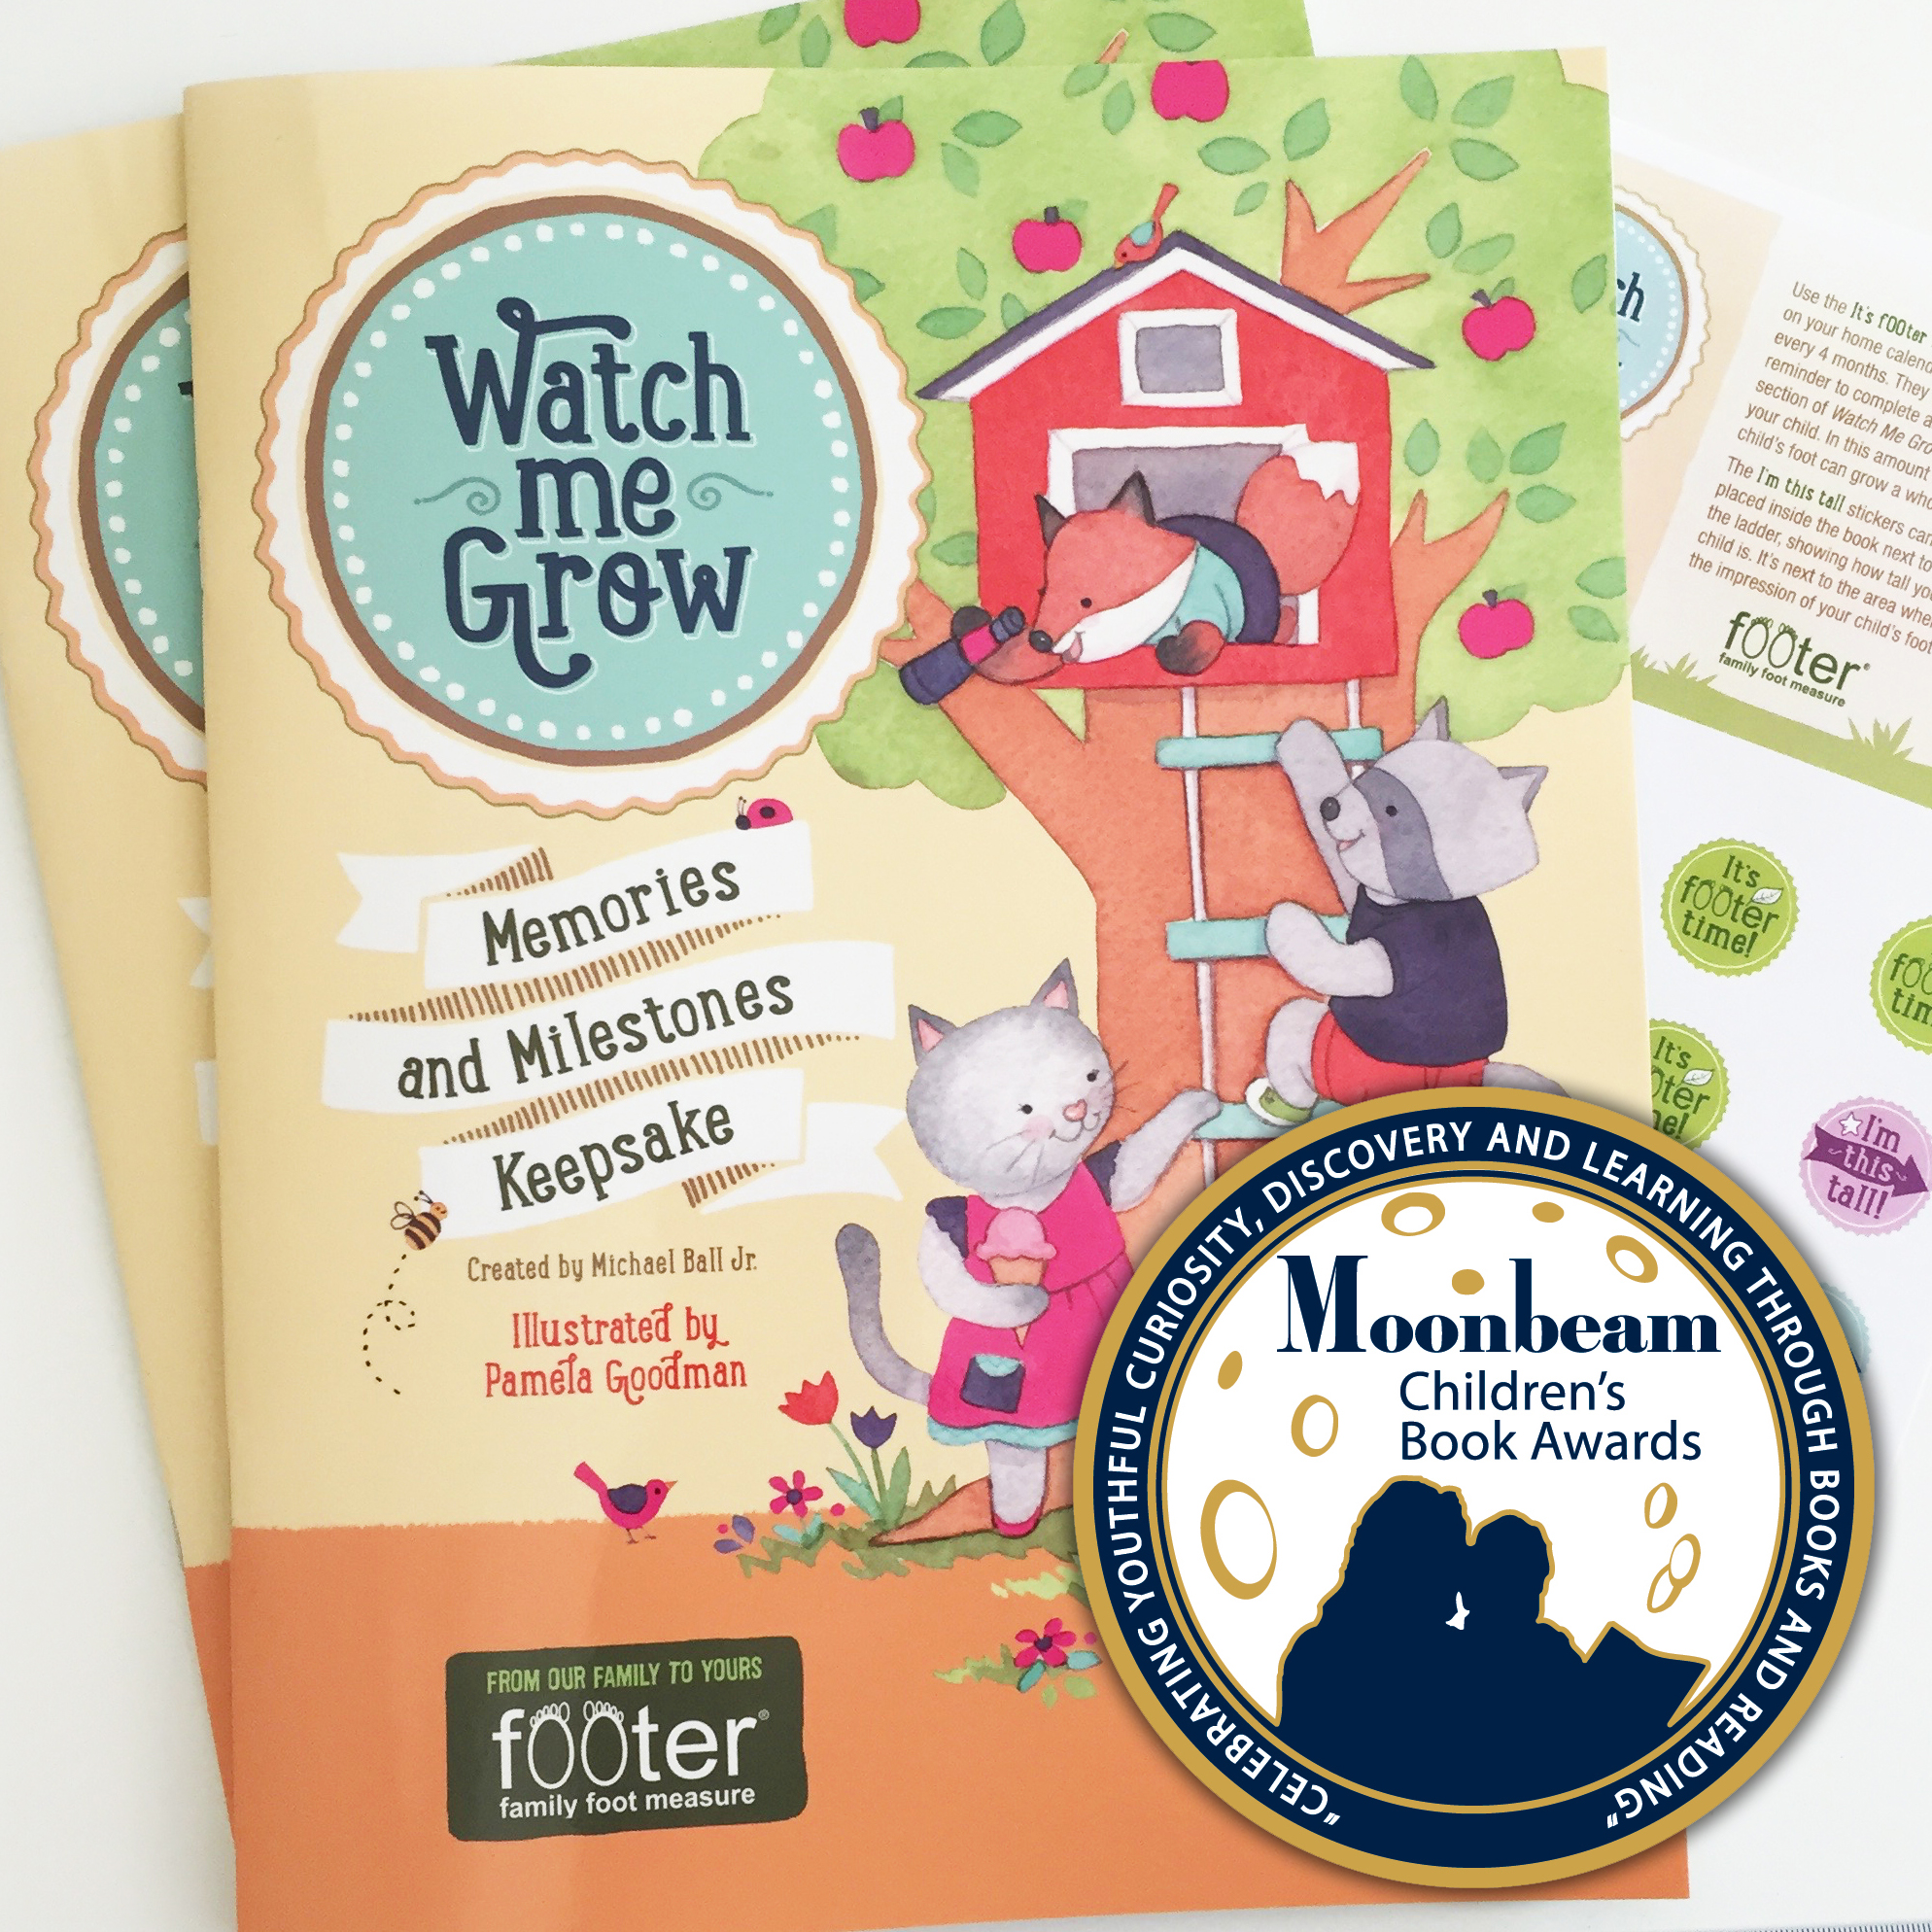 Moon Beam Award-Watch Me Grow by Footer Family Foot Measure-illustrated by Pamela Goodman.jpg